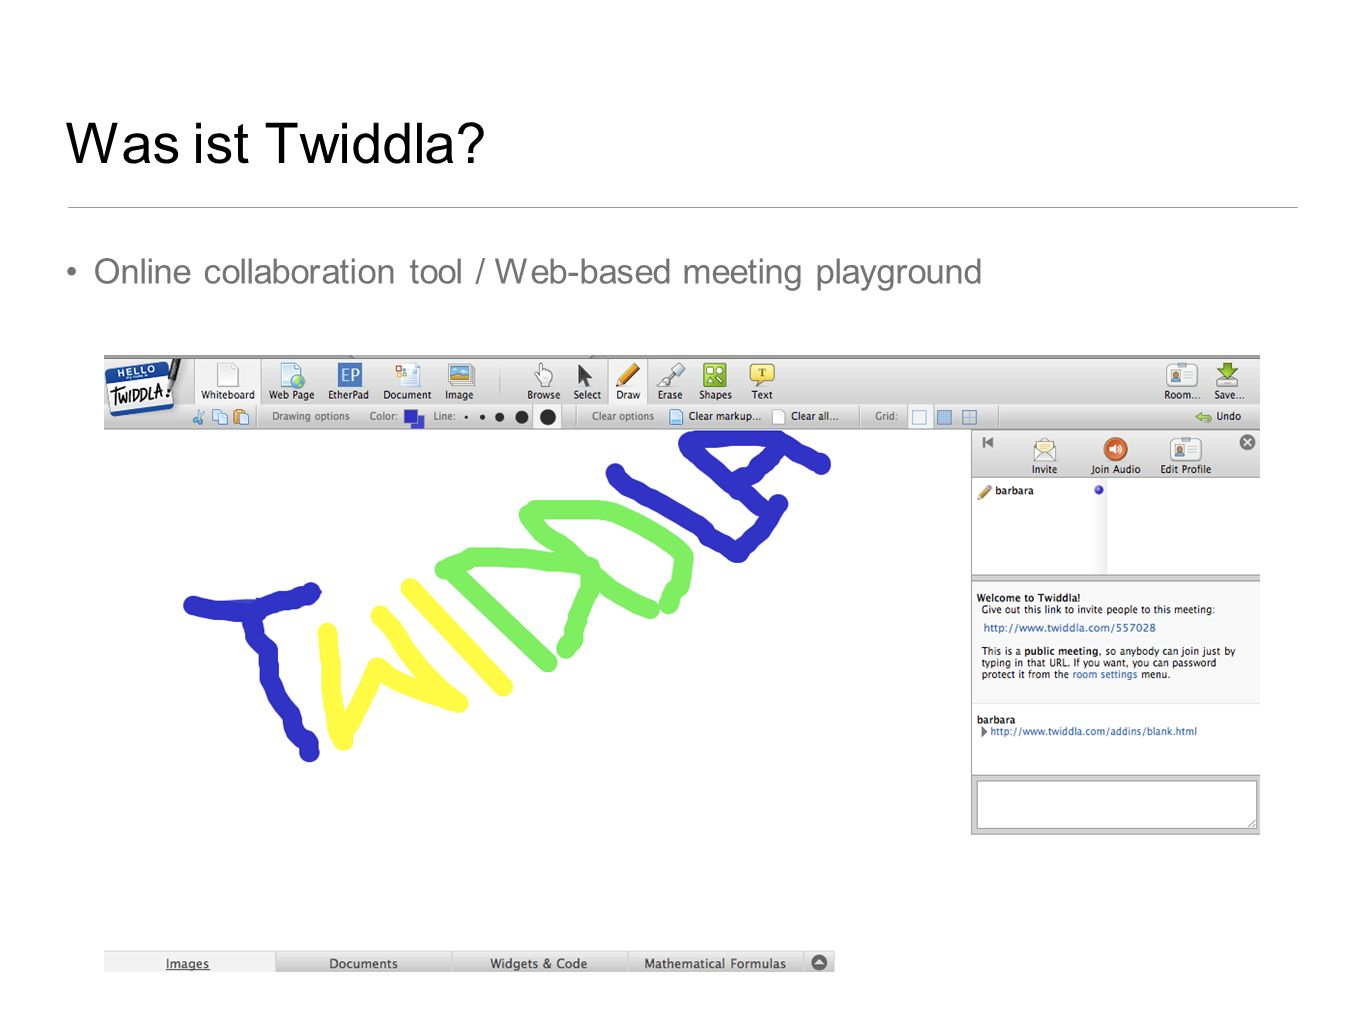 Online collaboration tool / Web-based meeting playground Was ist Twiddla